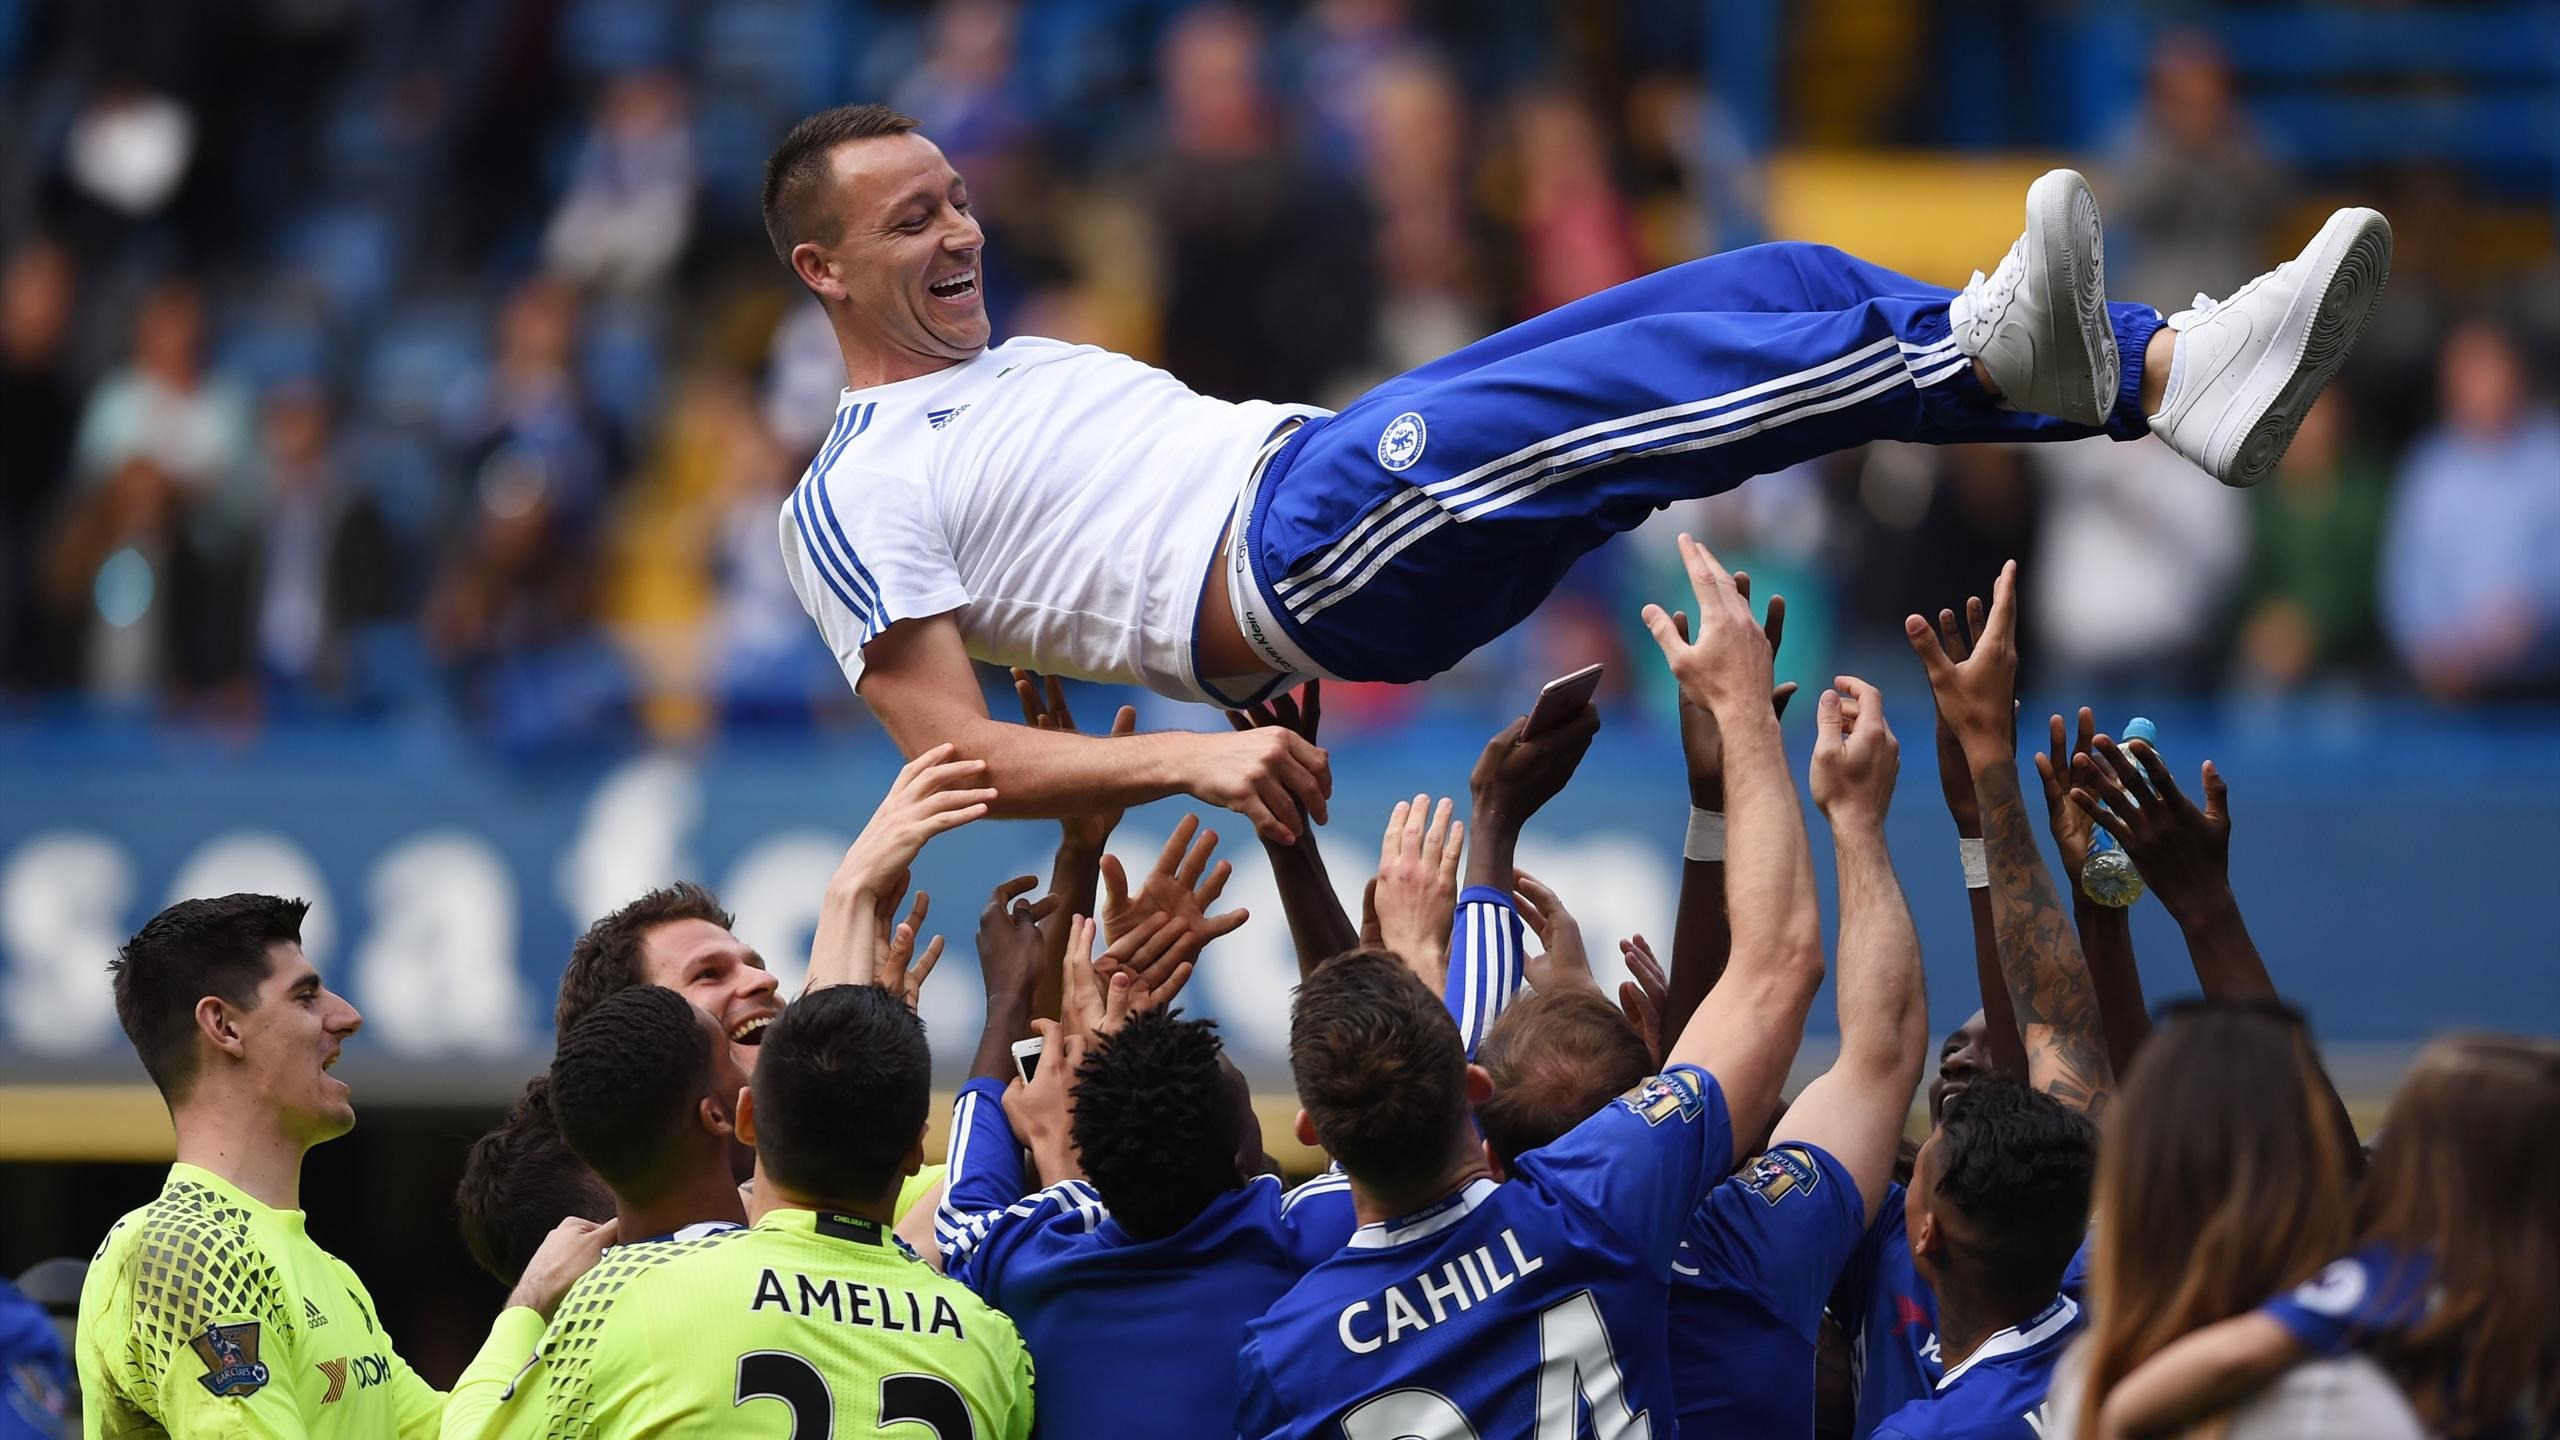 Inside John Terry's contract dilemma: Huge pay cut at heart of impasse